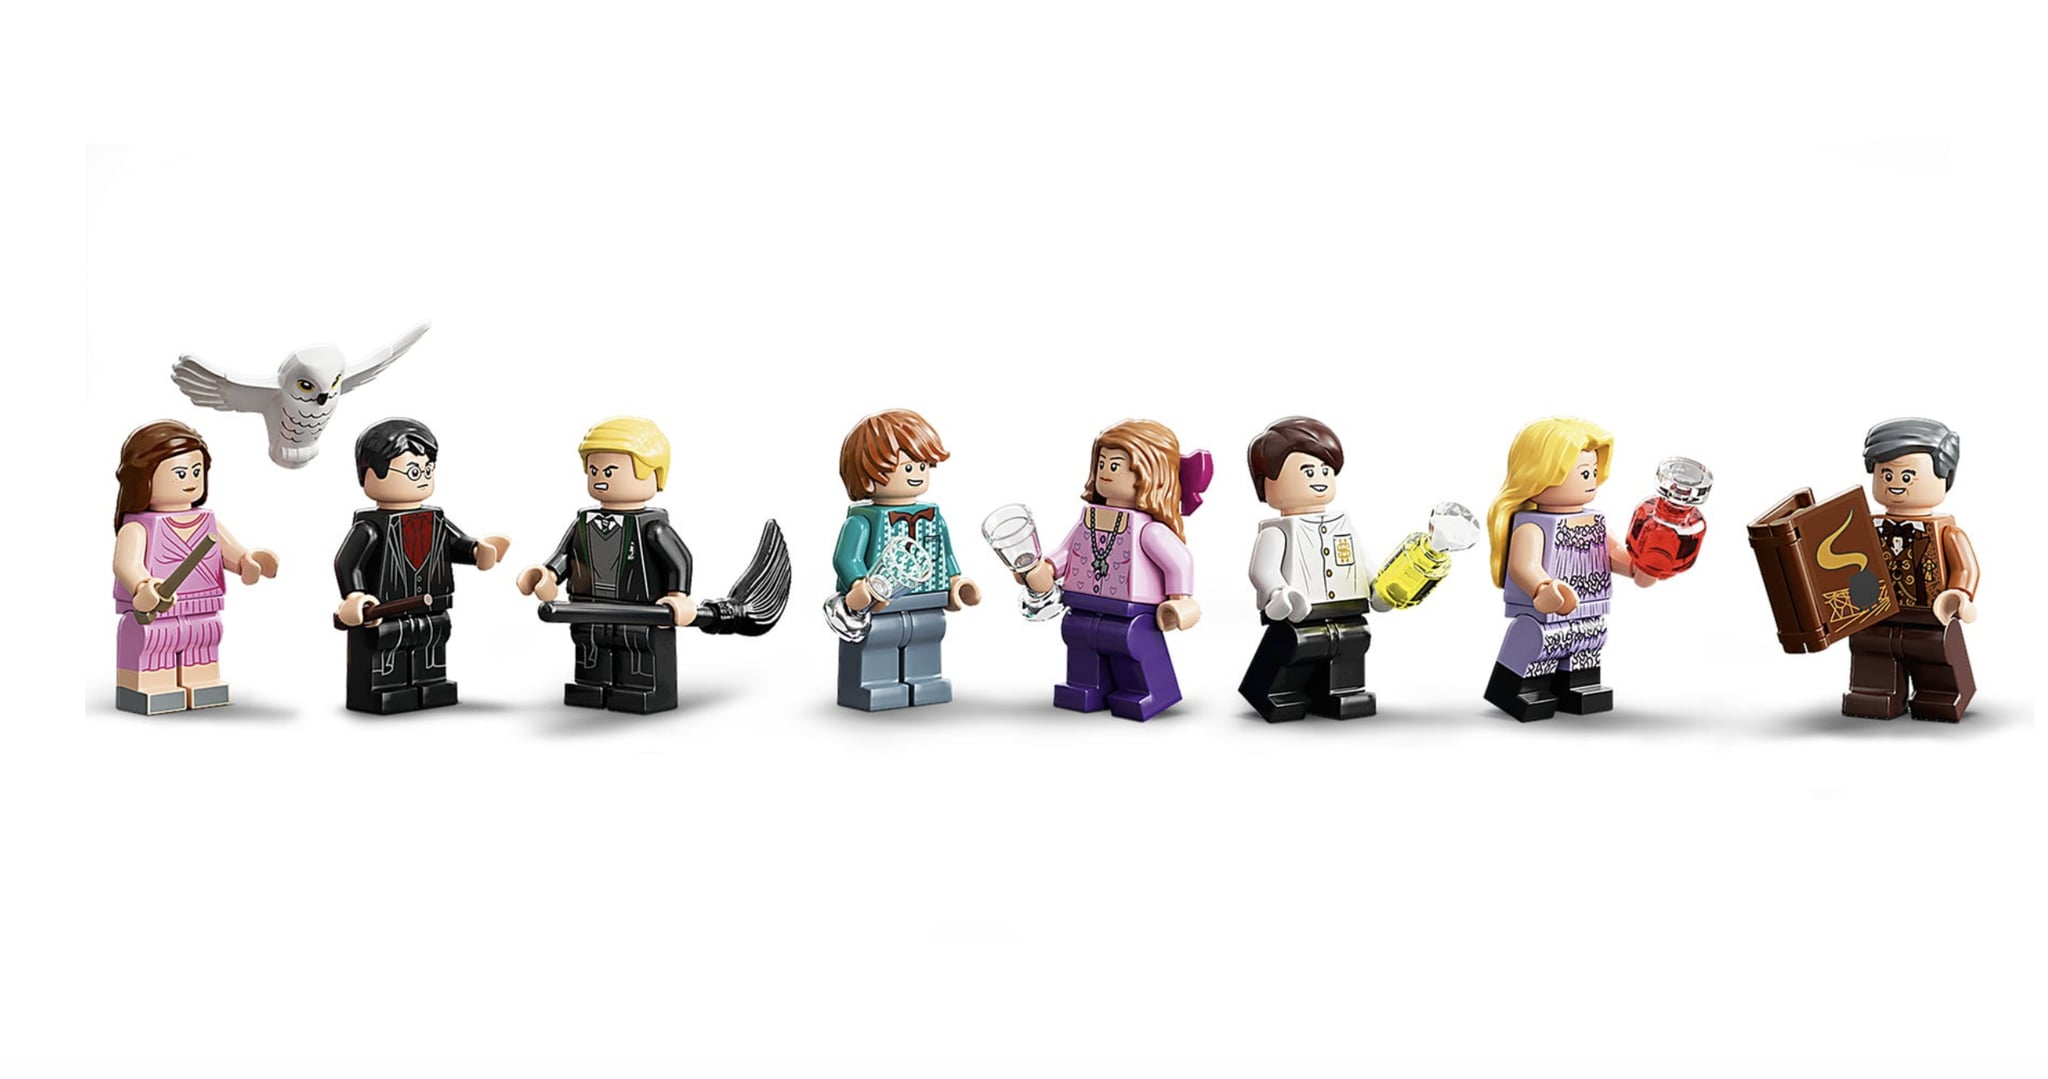 The Minifigures In The Lego Harry Potter Hogwarts Astronomy Tower New Lego Harry Potter Sets 2020 Popsugar Uk Parenting Photo 7